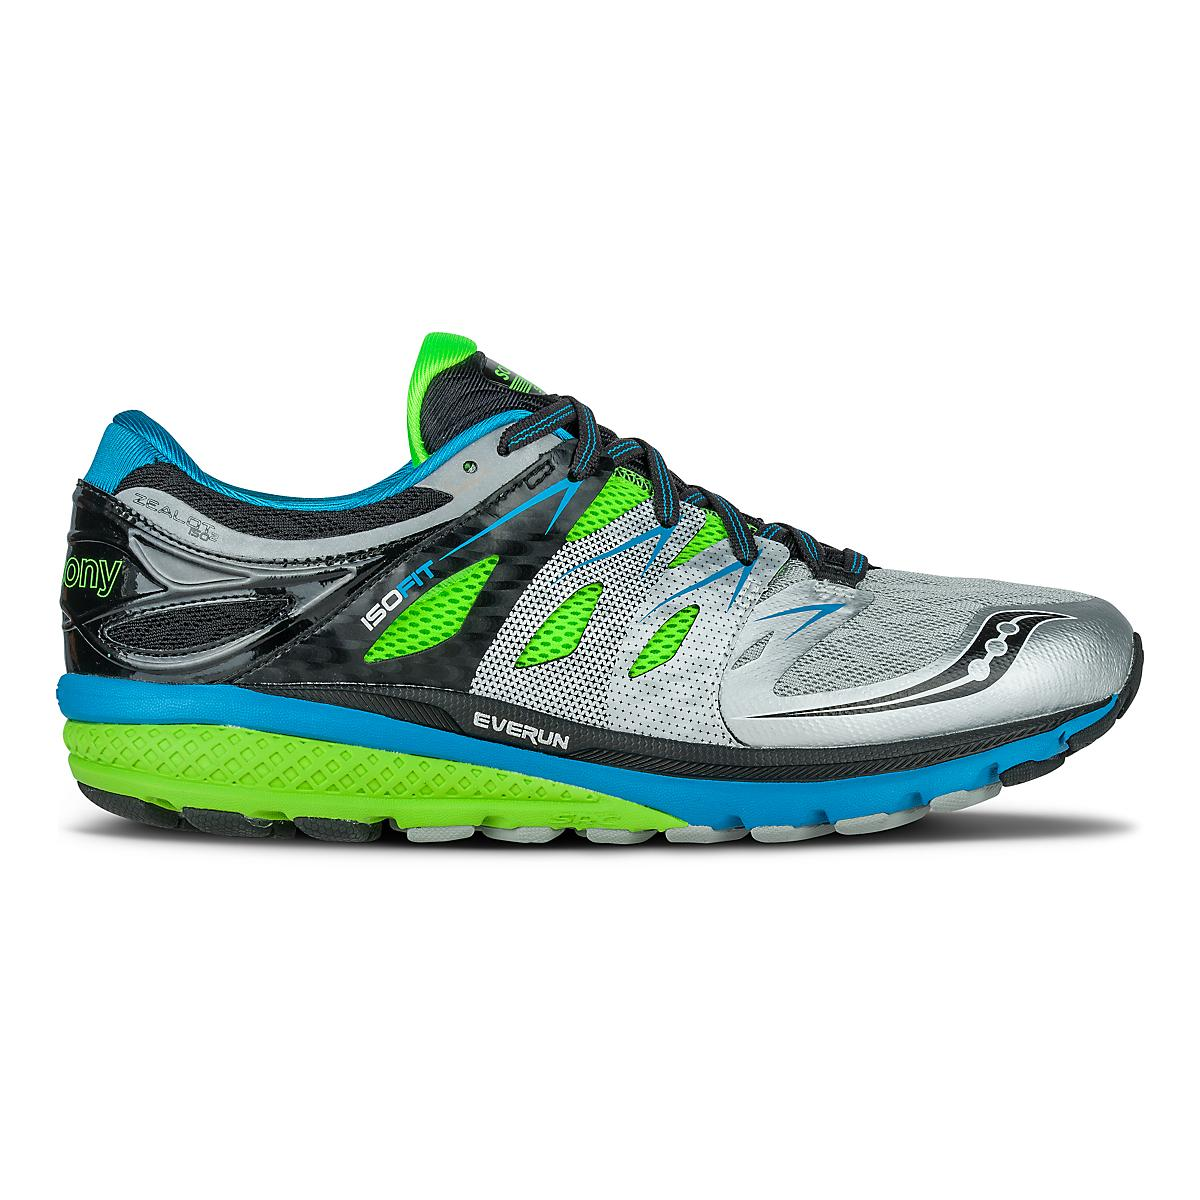 Saucony Zealot Iso Road Running Shoes